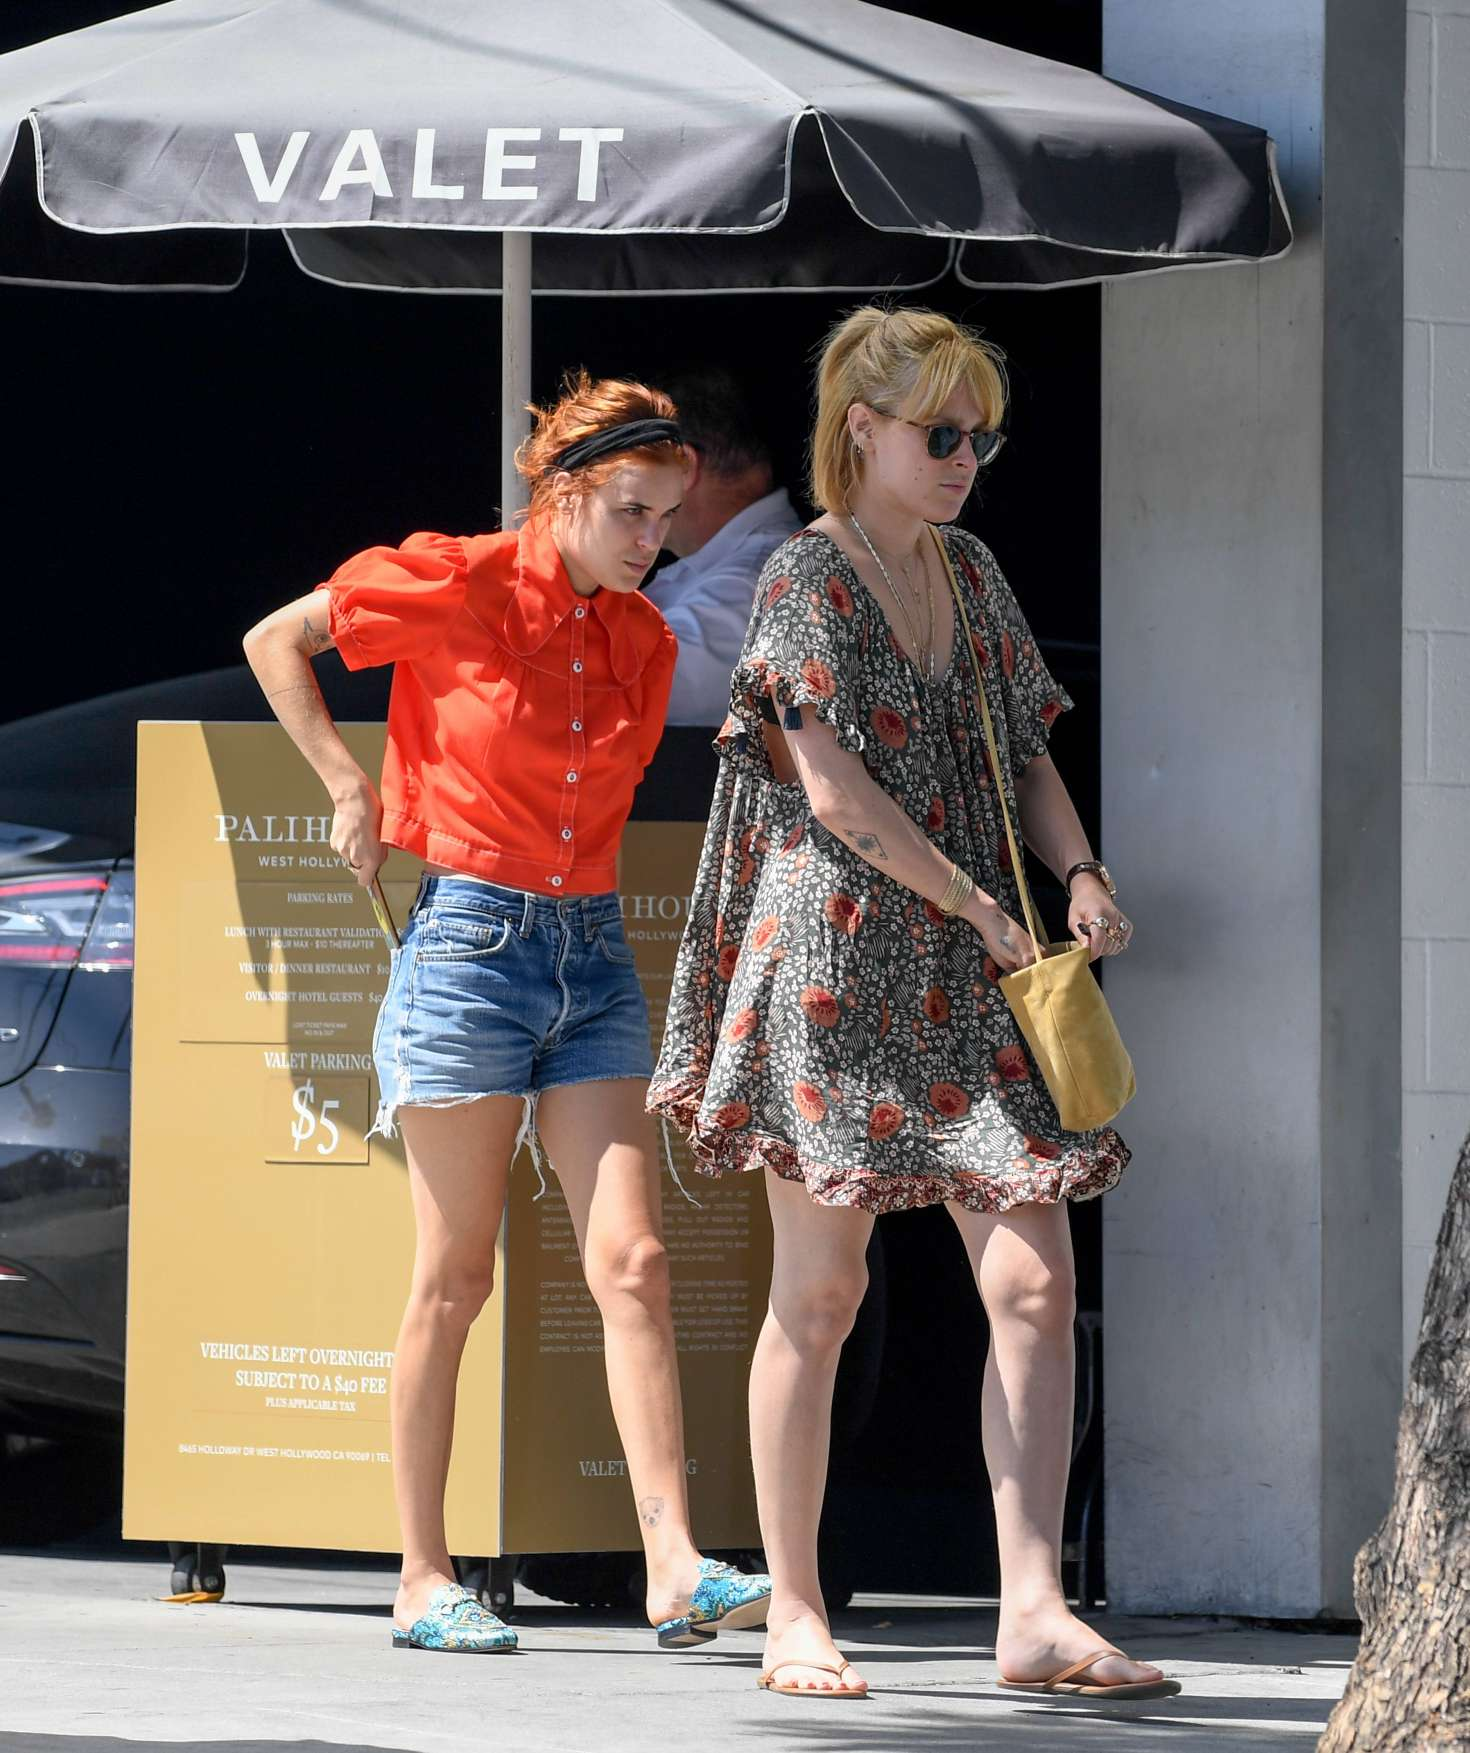 Rumer and Tallulah Willis at the Palihouse in West Hollywood